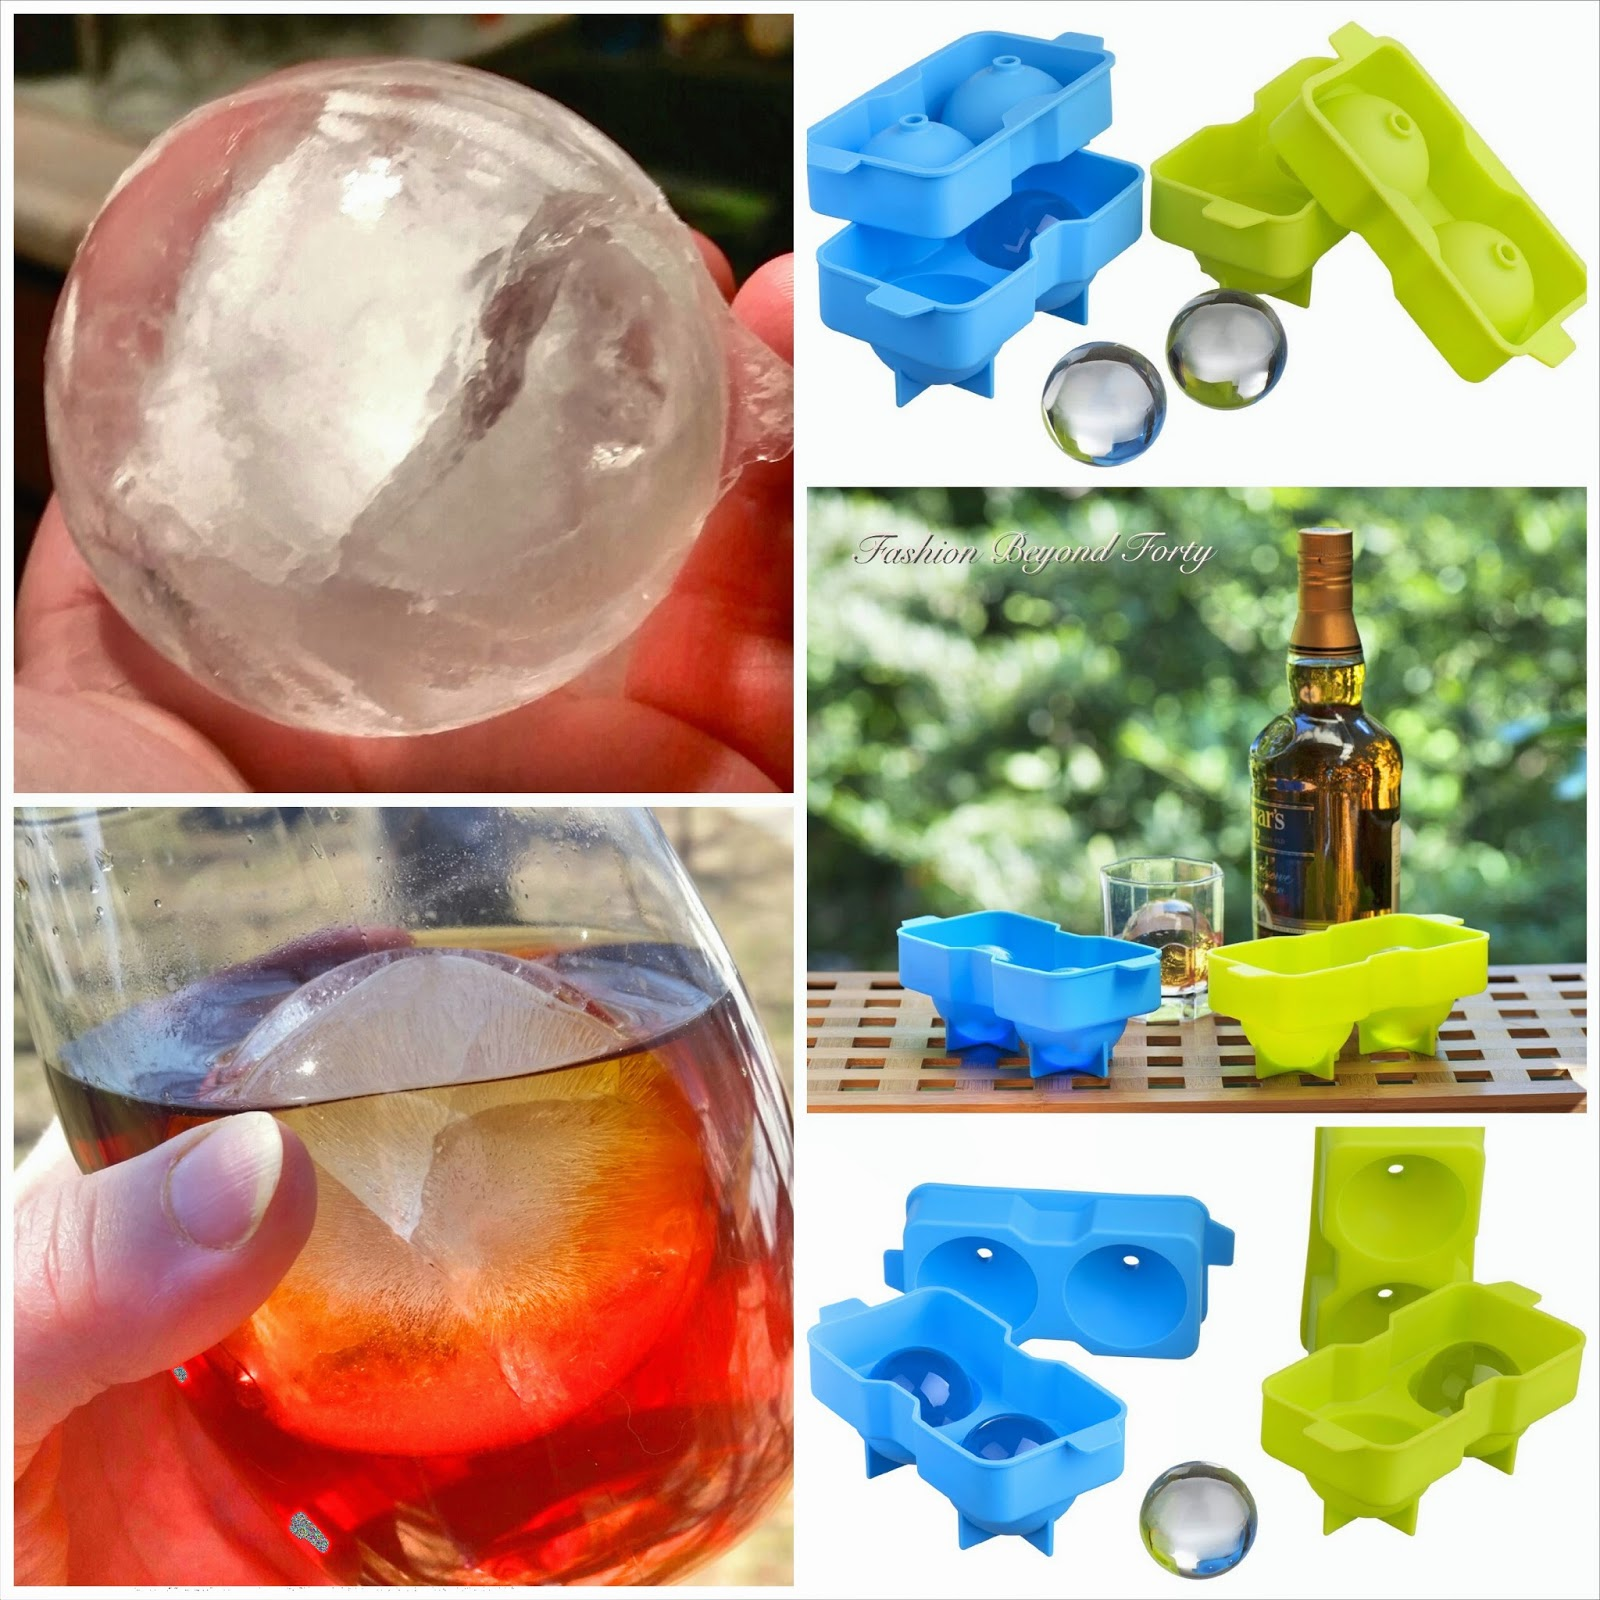 Kuuk Silicone Ice Ball Maker Review